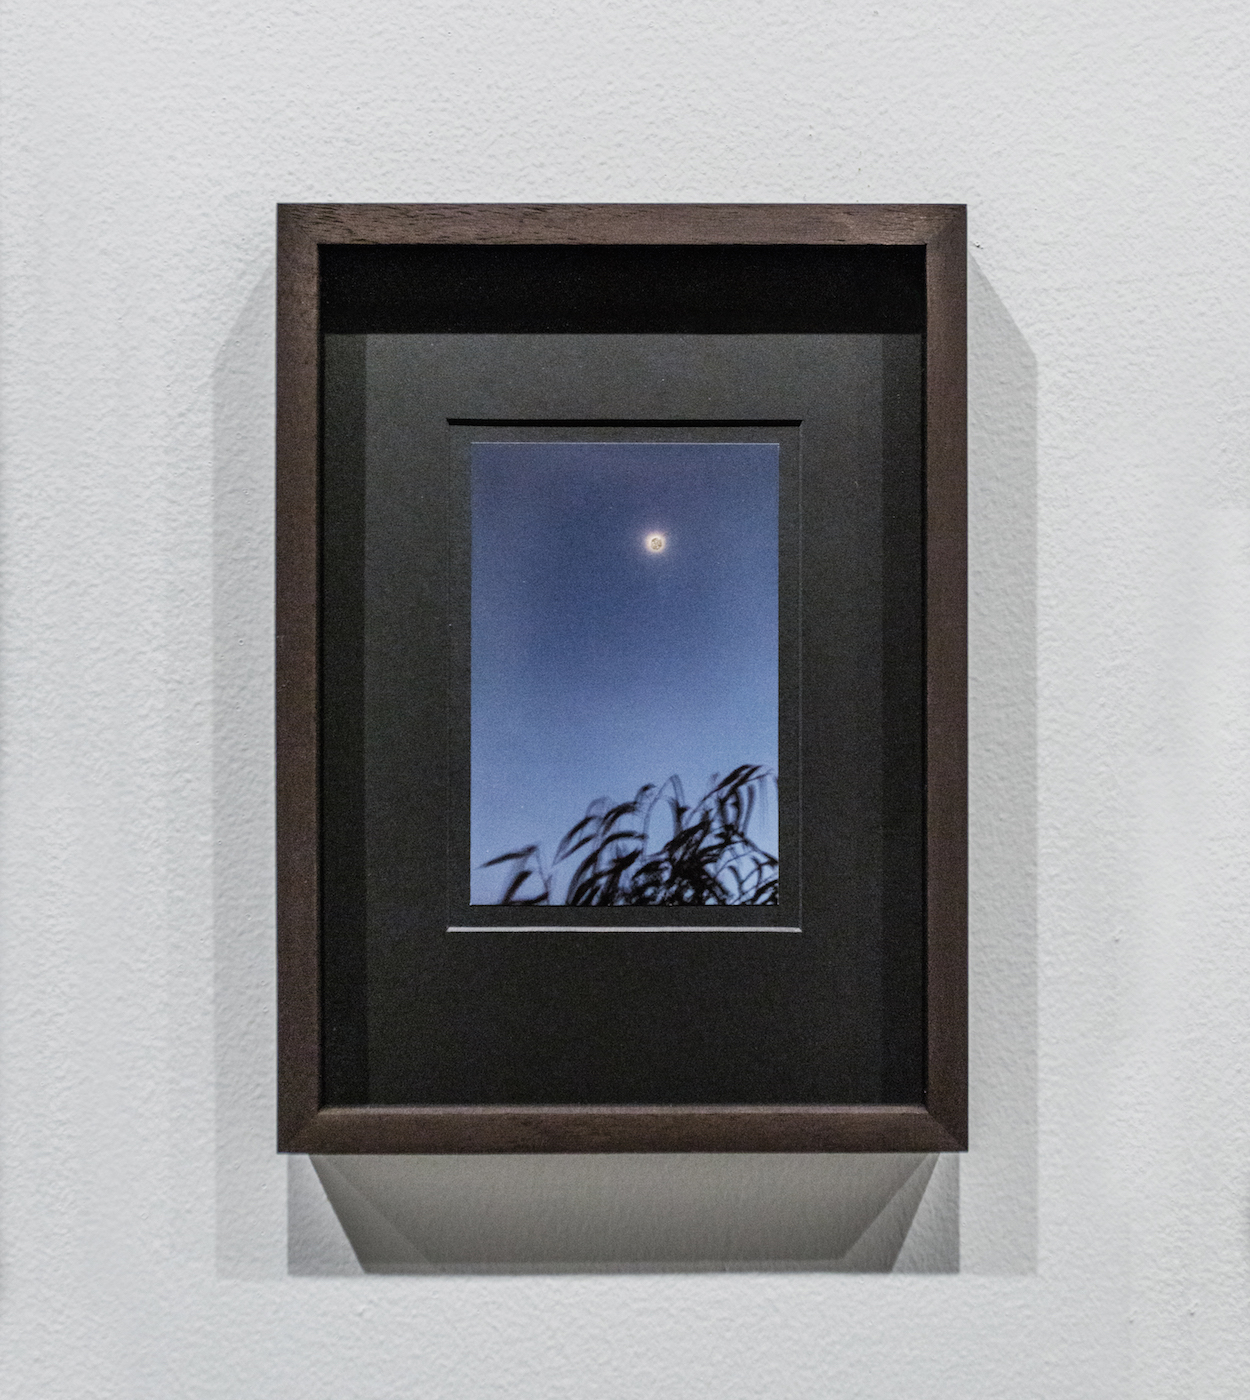 Moongold (3) 2016 Photograph Moon Gold leaf 15 x 10 cm  On random photographs taken by the artist, the moon, appearing very small, is gilded with Moon Gold leaf.